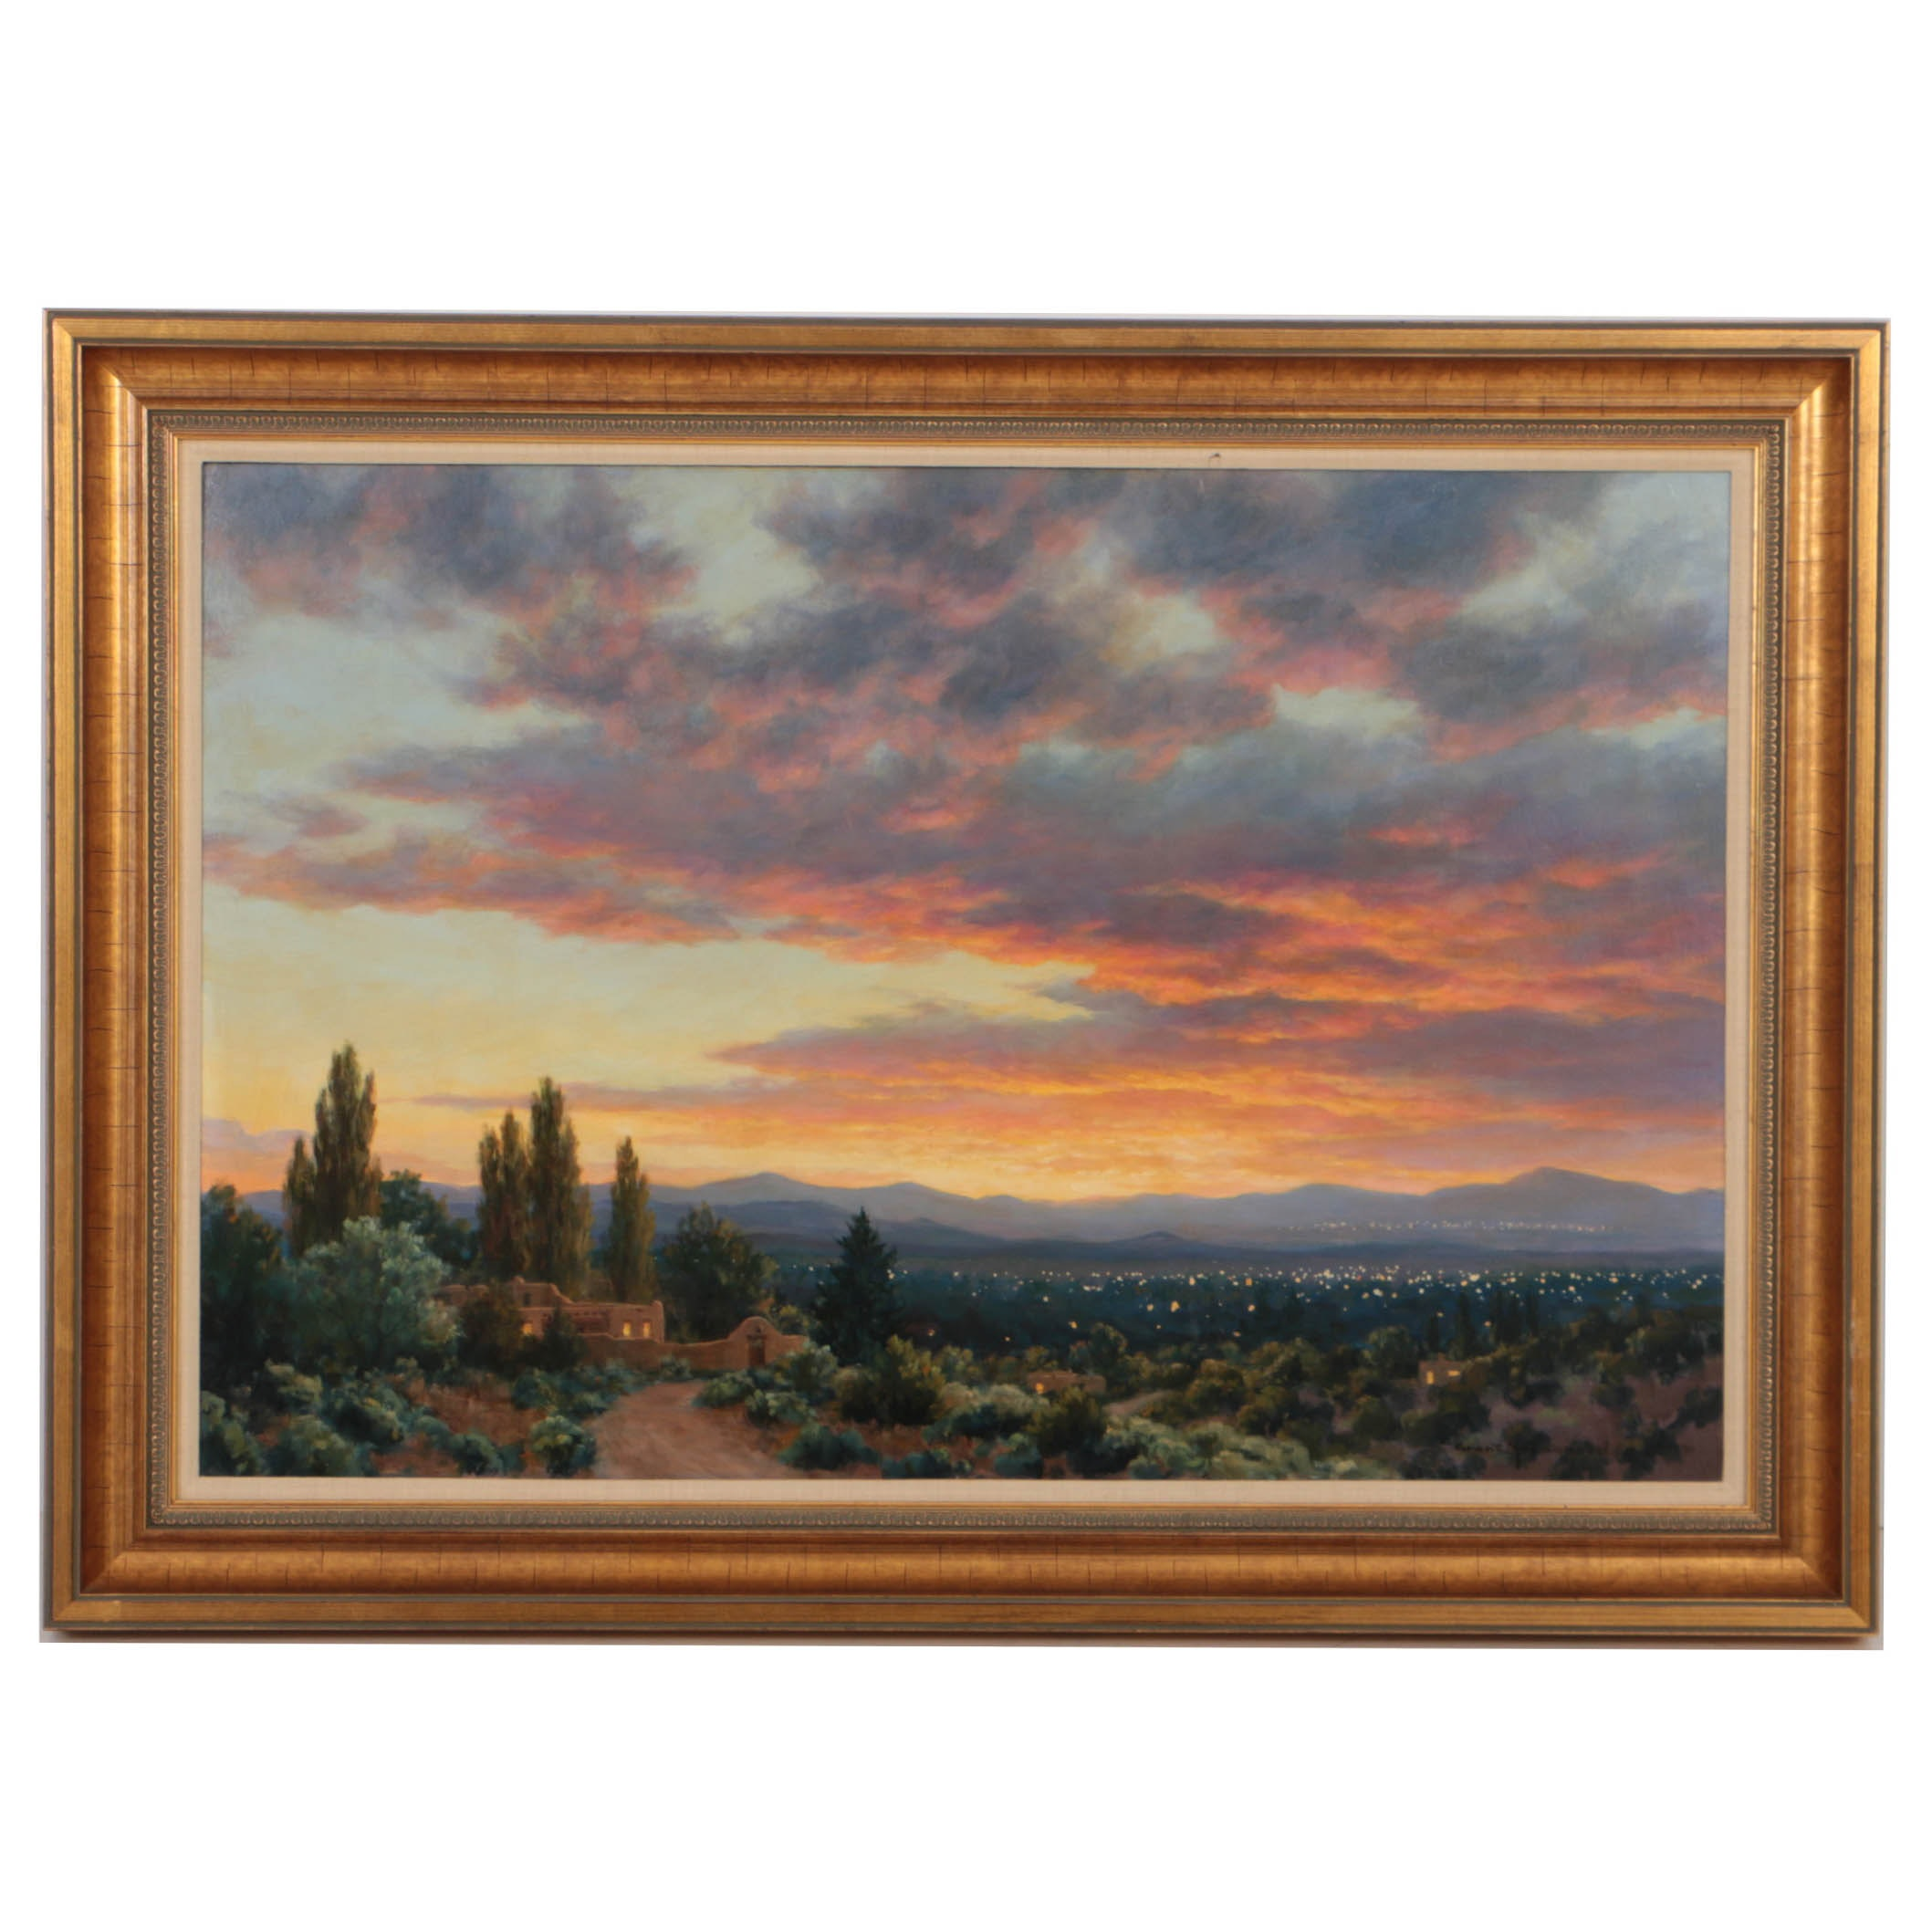 "Grant MacDonald 1990 Oil Painting on Board ""View of Santa Fe Sunset"""